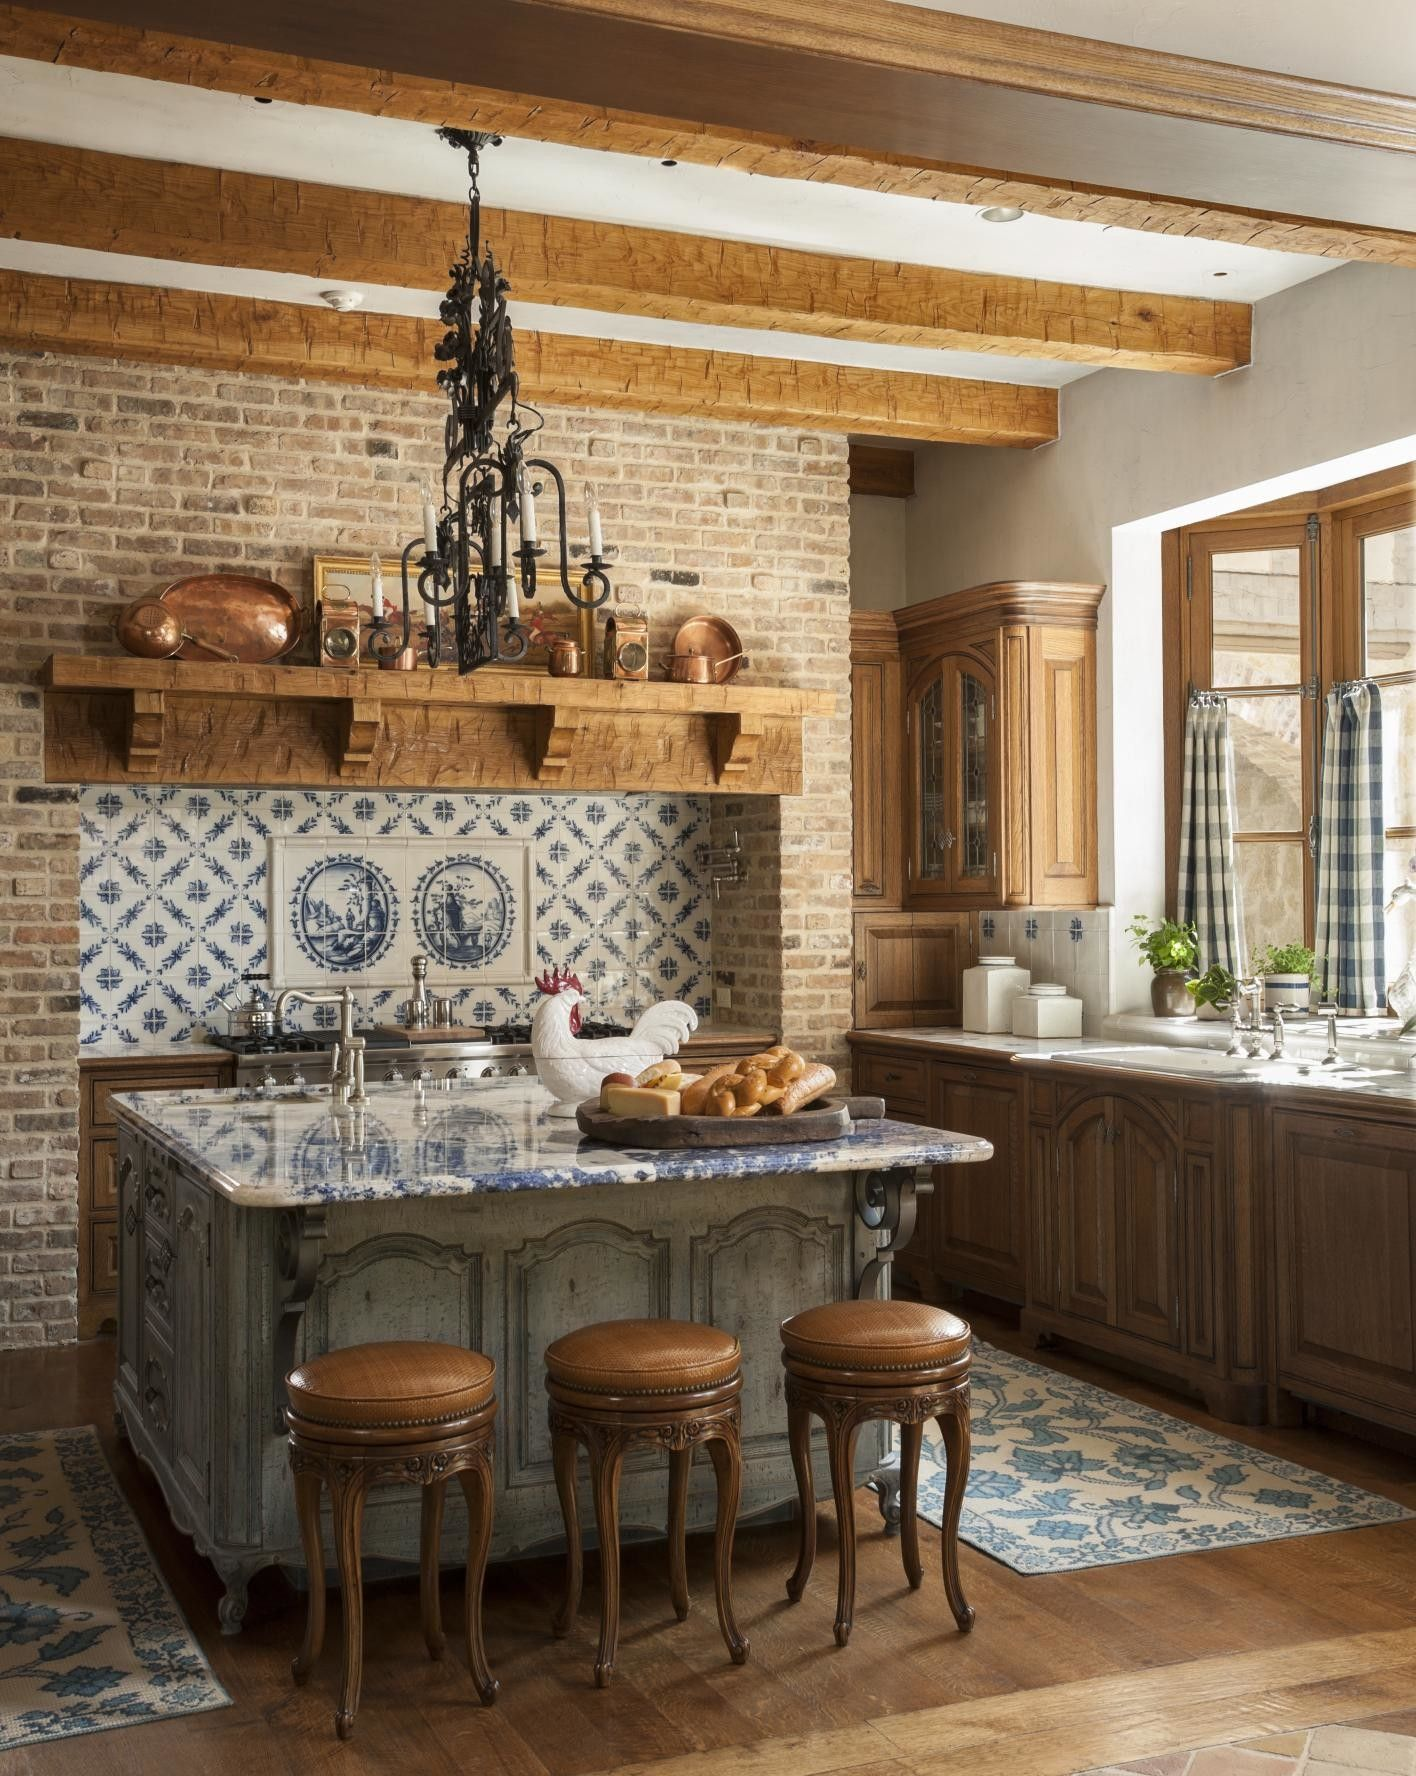 20 Kitchen Wall Ideas (Elegant Wood Paneling in Decorating